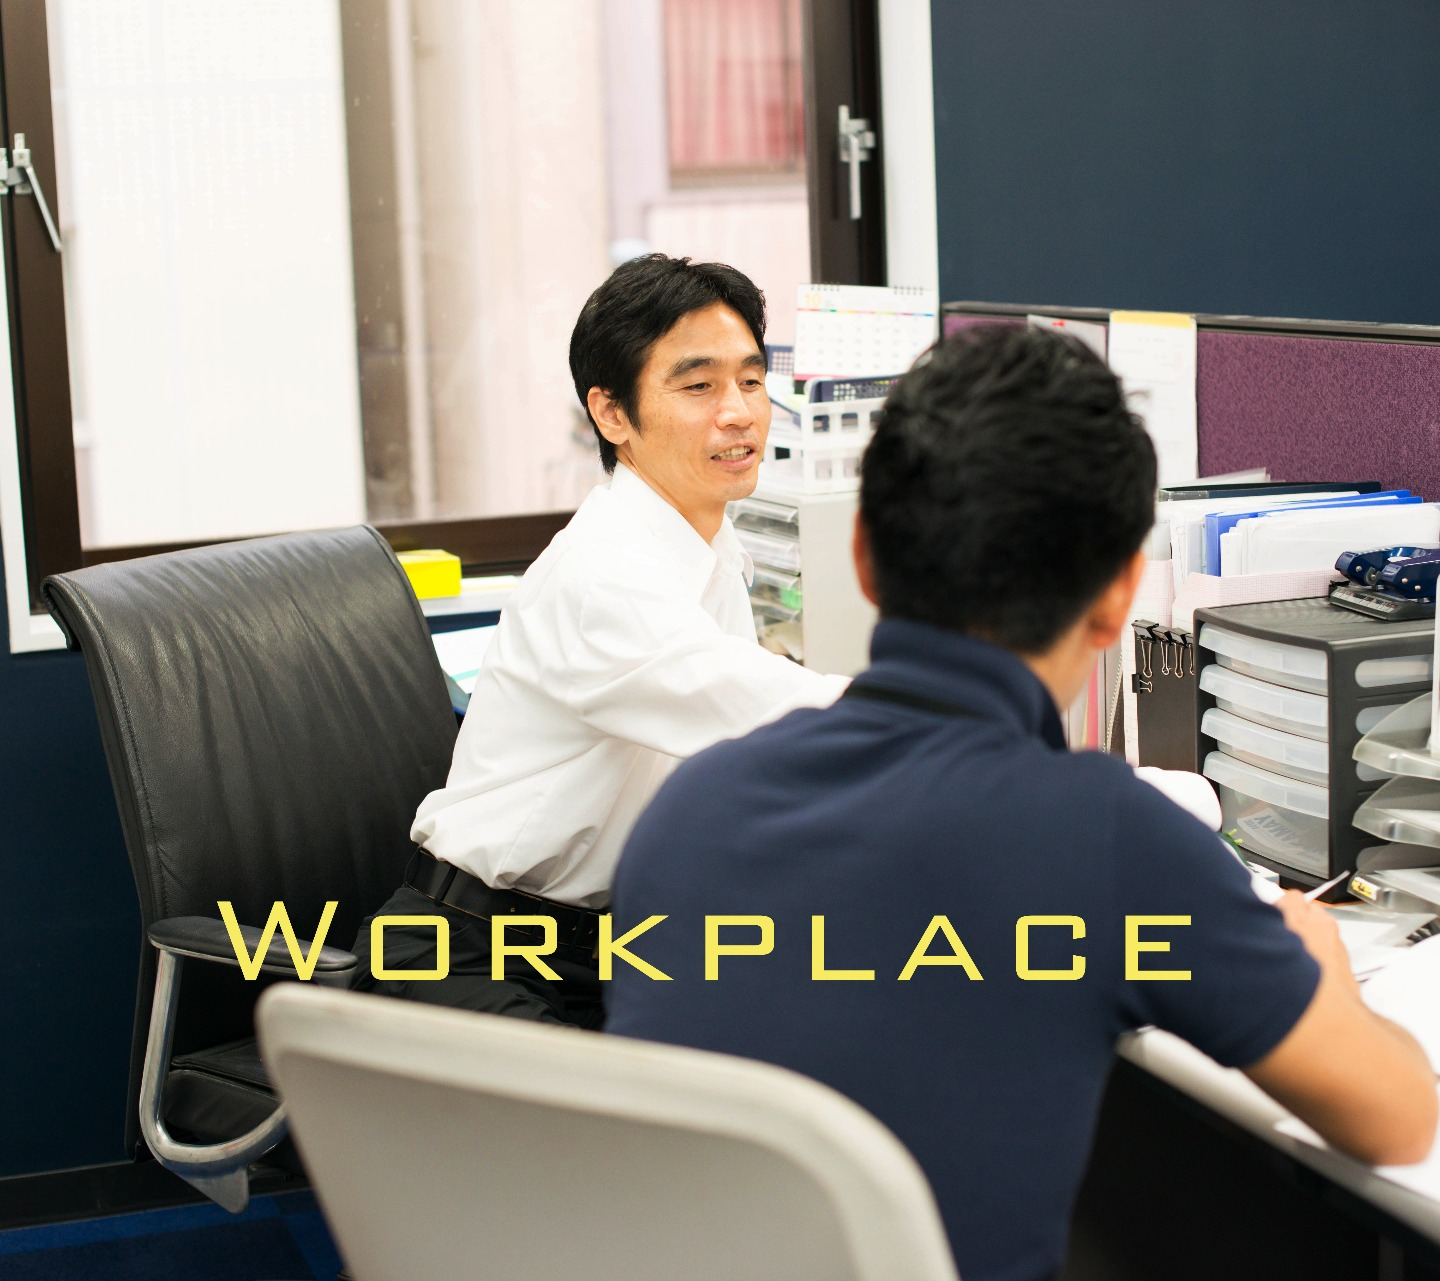 WorkplaceEnvironment 職場環境